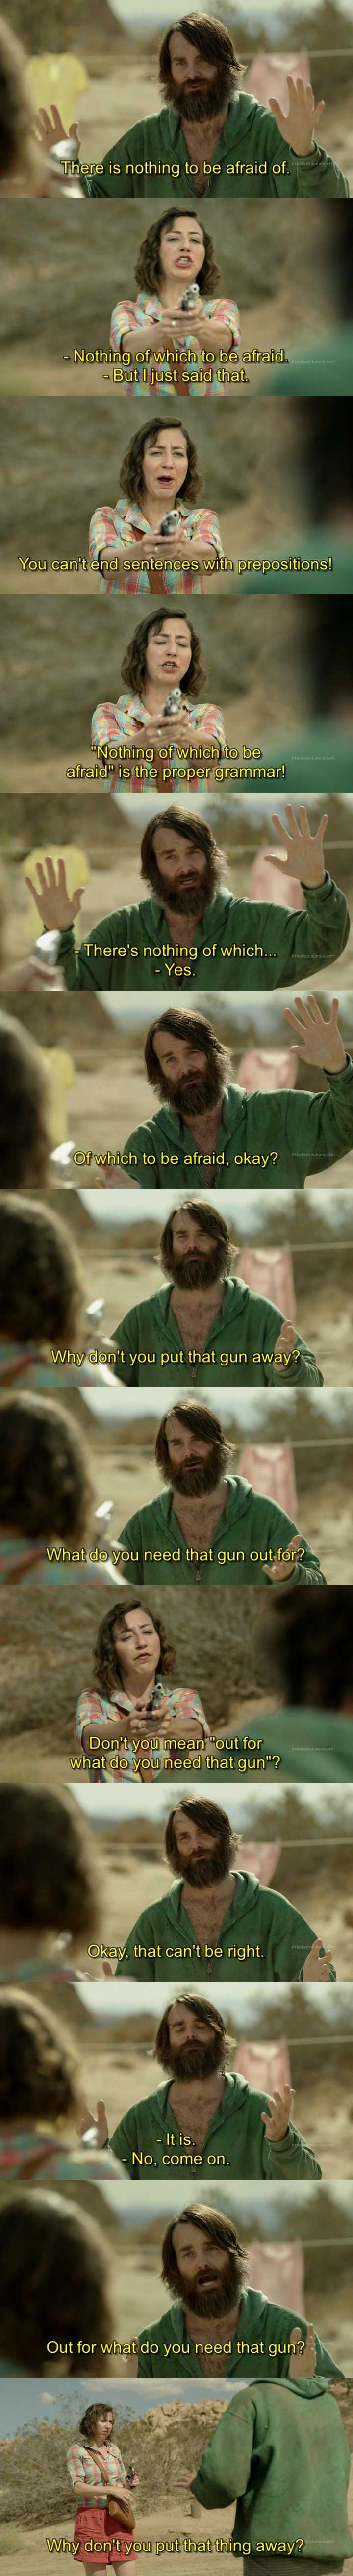 The Last Man on Earth: Carol instructs Phil on how to avoid ending sentences with prepositions.